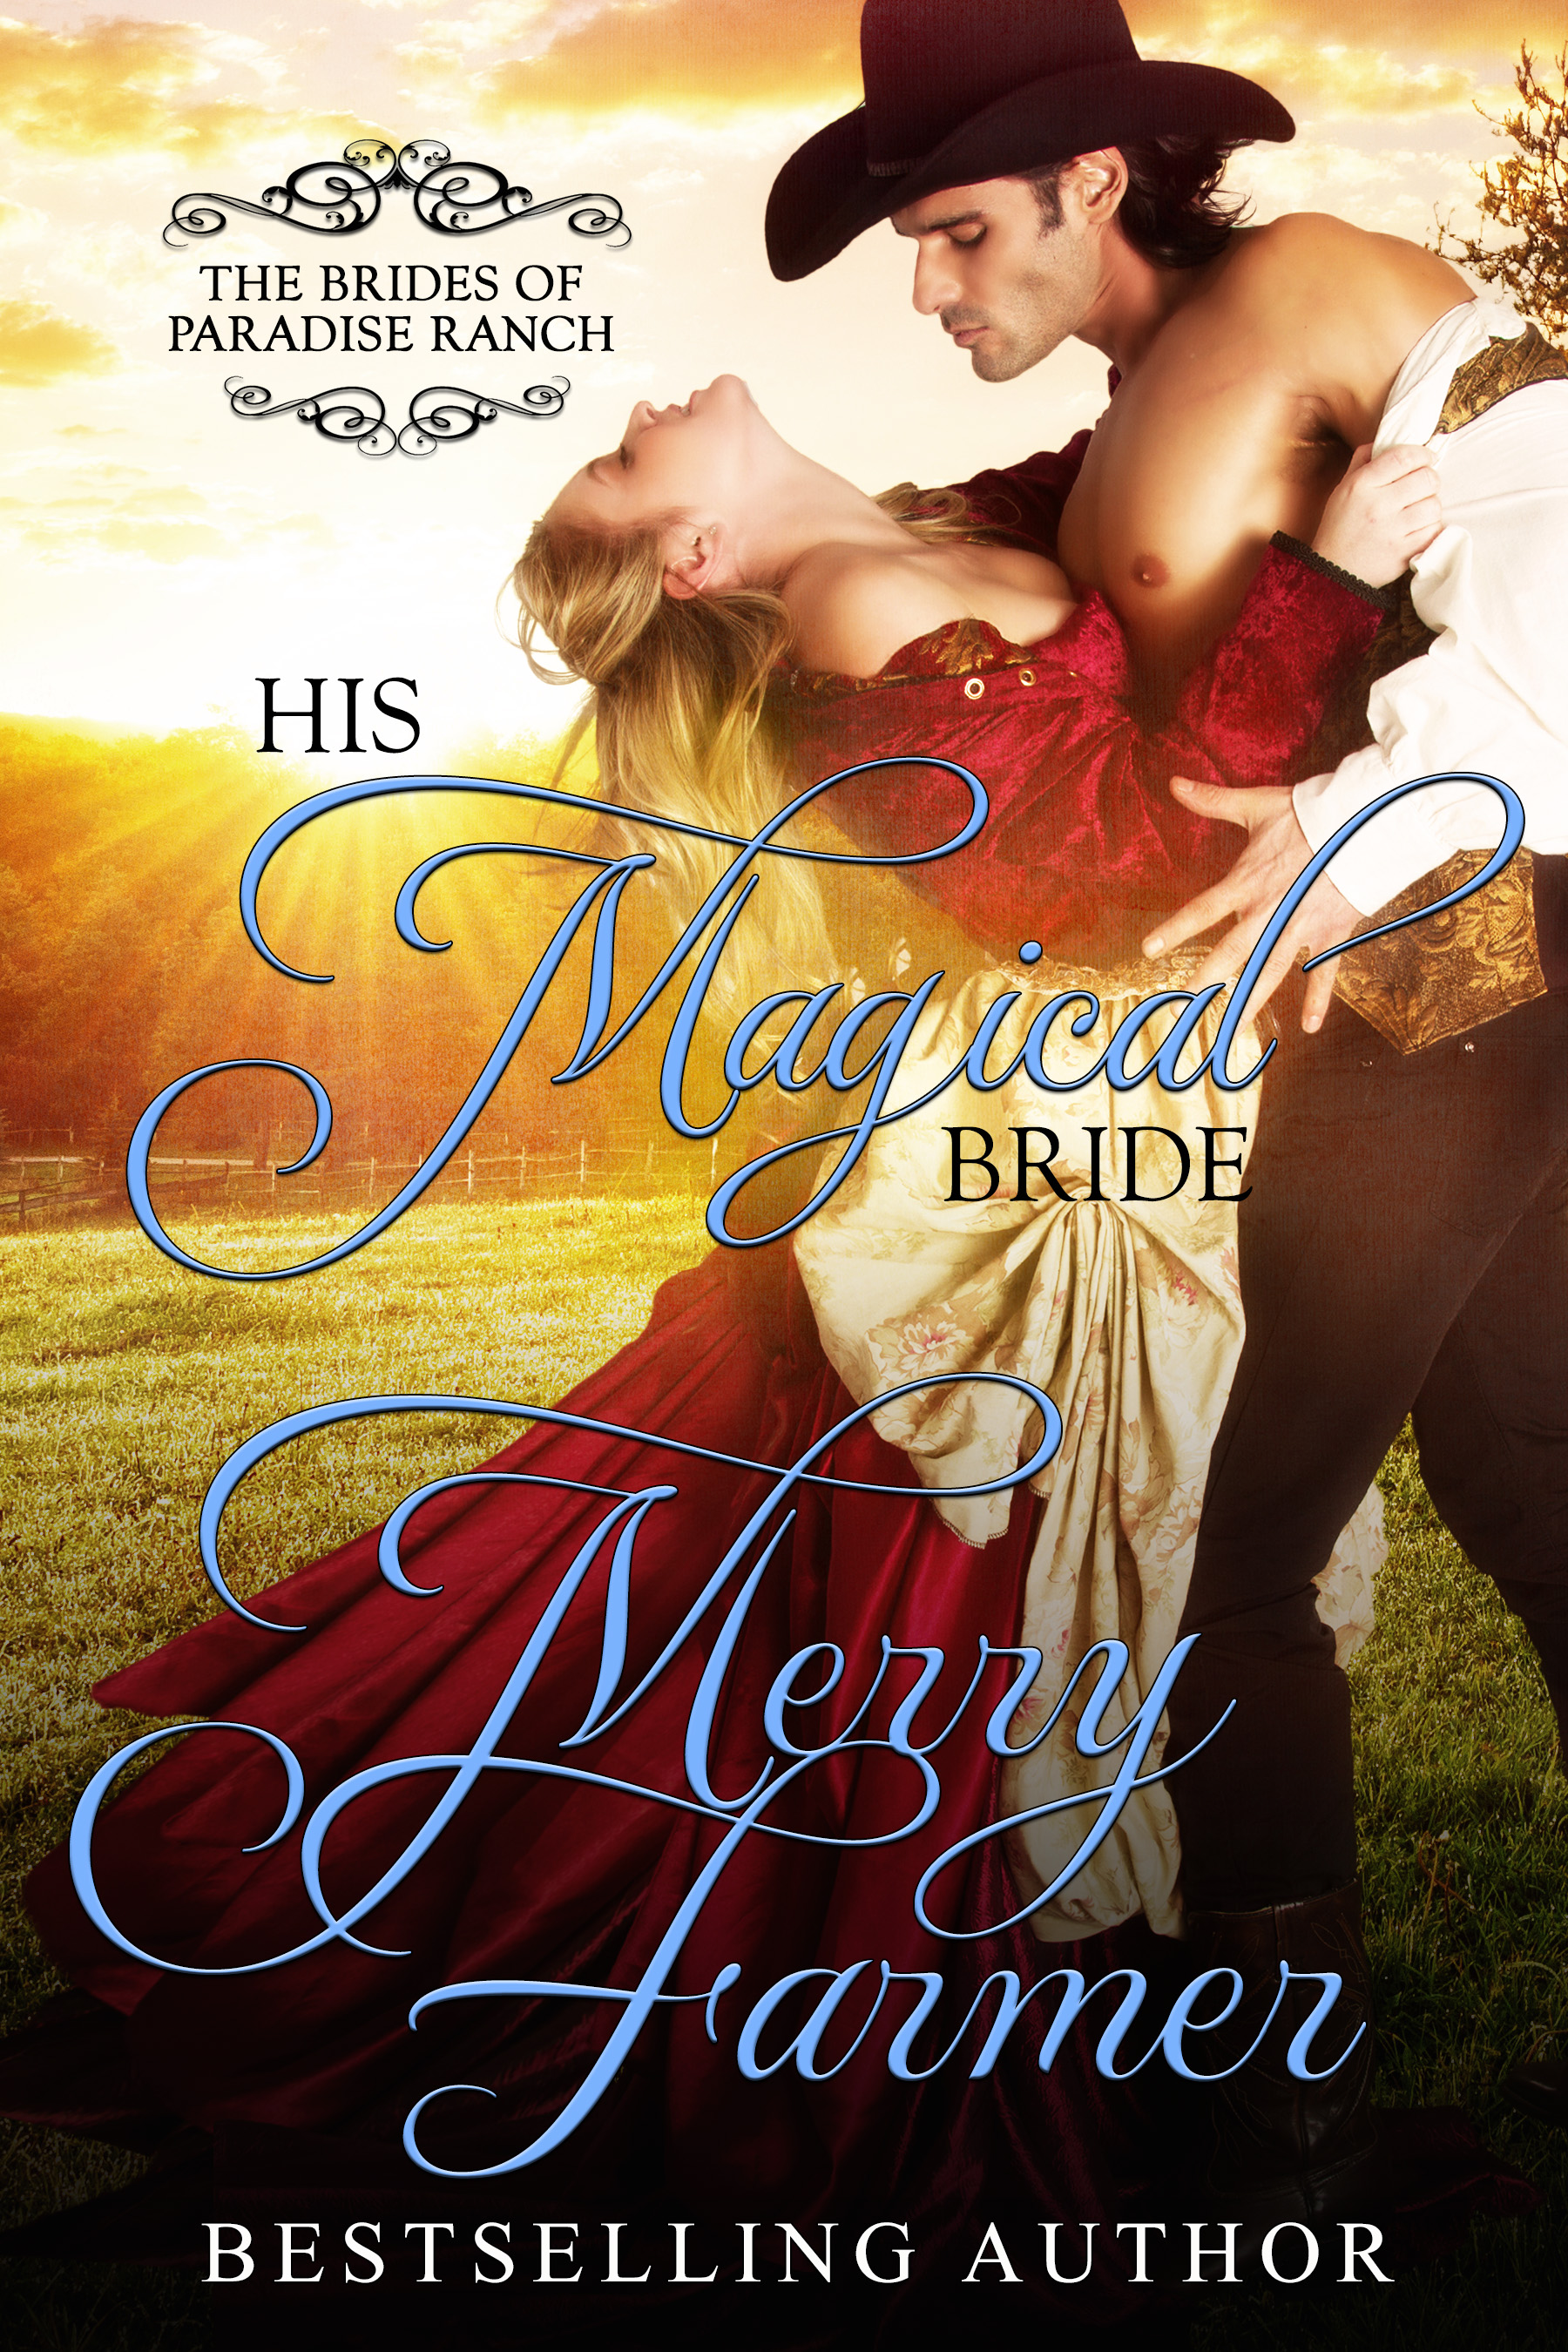 """His Magical Bride (Book 10) - Haskell, Wyoming sheriff, Trey Knighton, has never considered himself the marrying sort. He'd rather face down a whole pack of bloodthirsty outlaws than give his heart away, especially after losing his entire family to cholera as a boy. Love is just too big of a risk. But Howard Haskell has twisted his arm into sending away for a mail-order bride, and he's too much of a gentleman to turn her away. He's convinced everything will be fine if his marriage is in name only.Talia Lambert is overjoyed not only to have a home and a husband at last, she's eager to put her skills as a nurse to good use. She gets her chance only days after arriving in Haskell when influenza breaks out. She is happy to be of use, but as the attraction between her and Trey grows, so does Trey's fear that disease will take her too if she continues working with the sick.But Talia and Trey face a danger more sinister than disease when her healing skill is labeled as witchcraft. Trey must defend Talia against the ridiculous accusations, even as he overcomes his fears to find with Talia the love he has always been missing.PLEASE BE ADVISED: Steam Level = HOTIf you would like to read this story without any """"scenes,"""" check out Talia: The Magical Bride."""